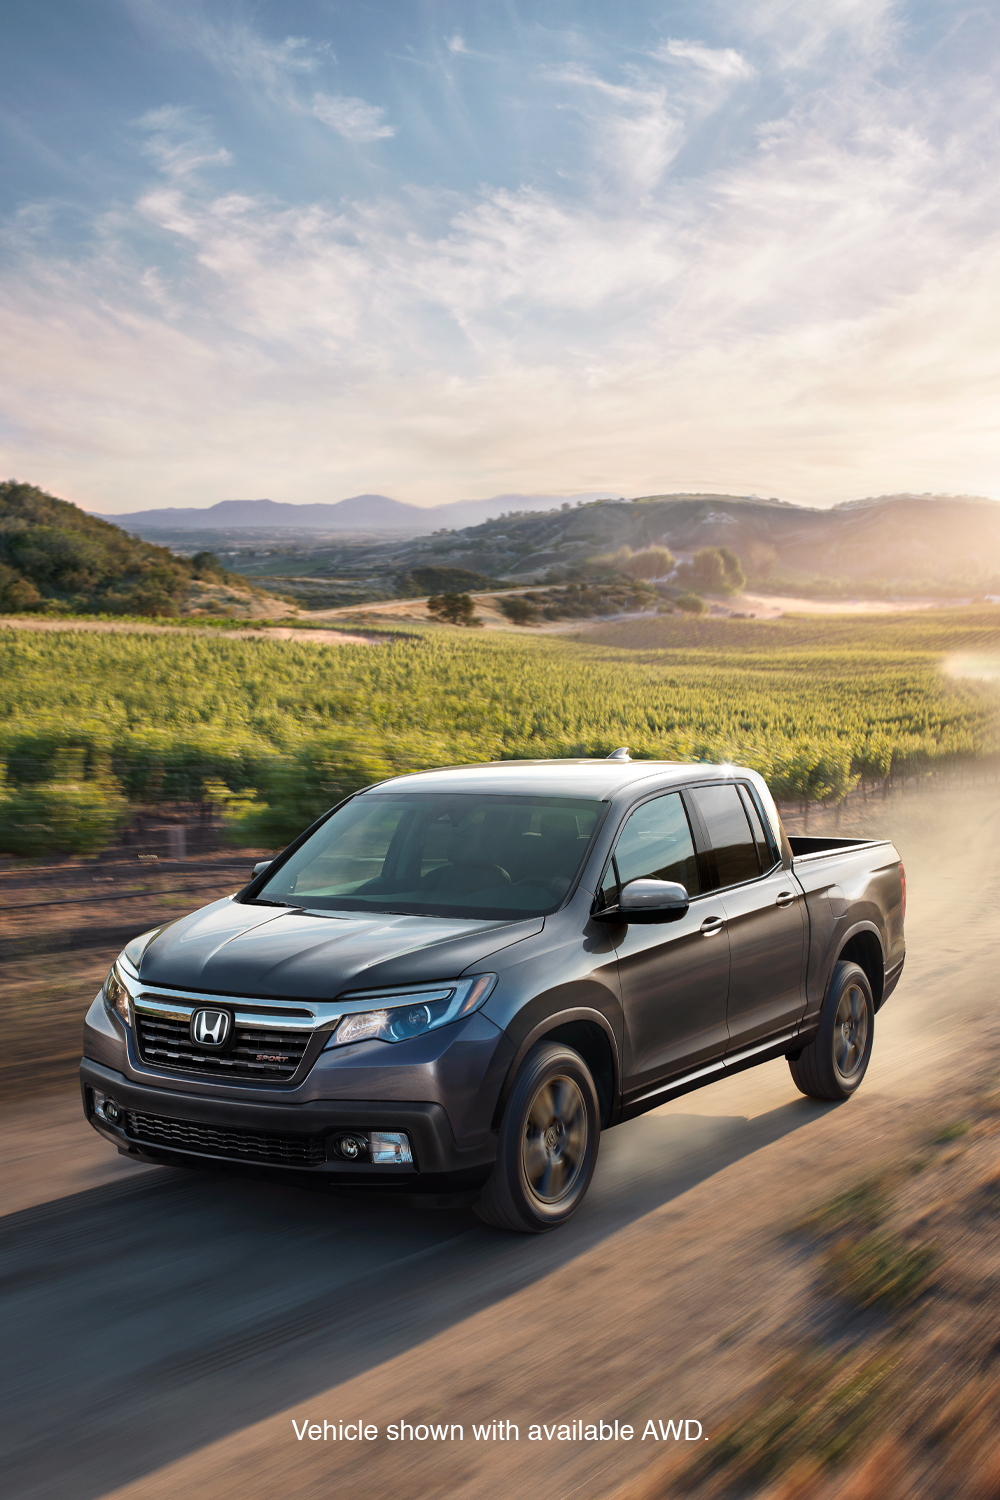 Drive The Fine Line Between Rugged And Refined In The Honda Ridgeline In 2020 Honda Ridgeline Honda V Honda